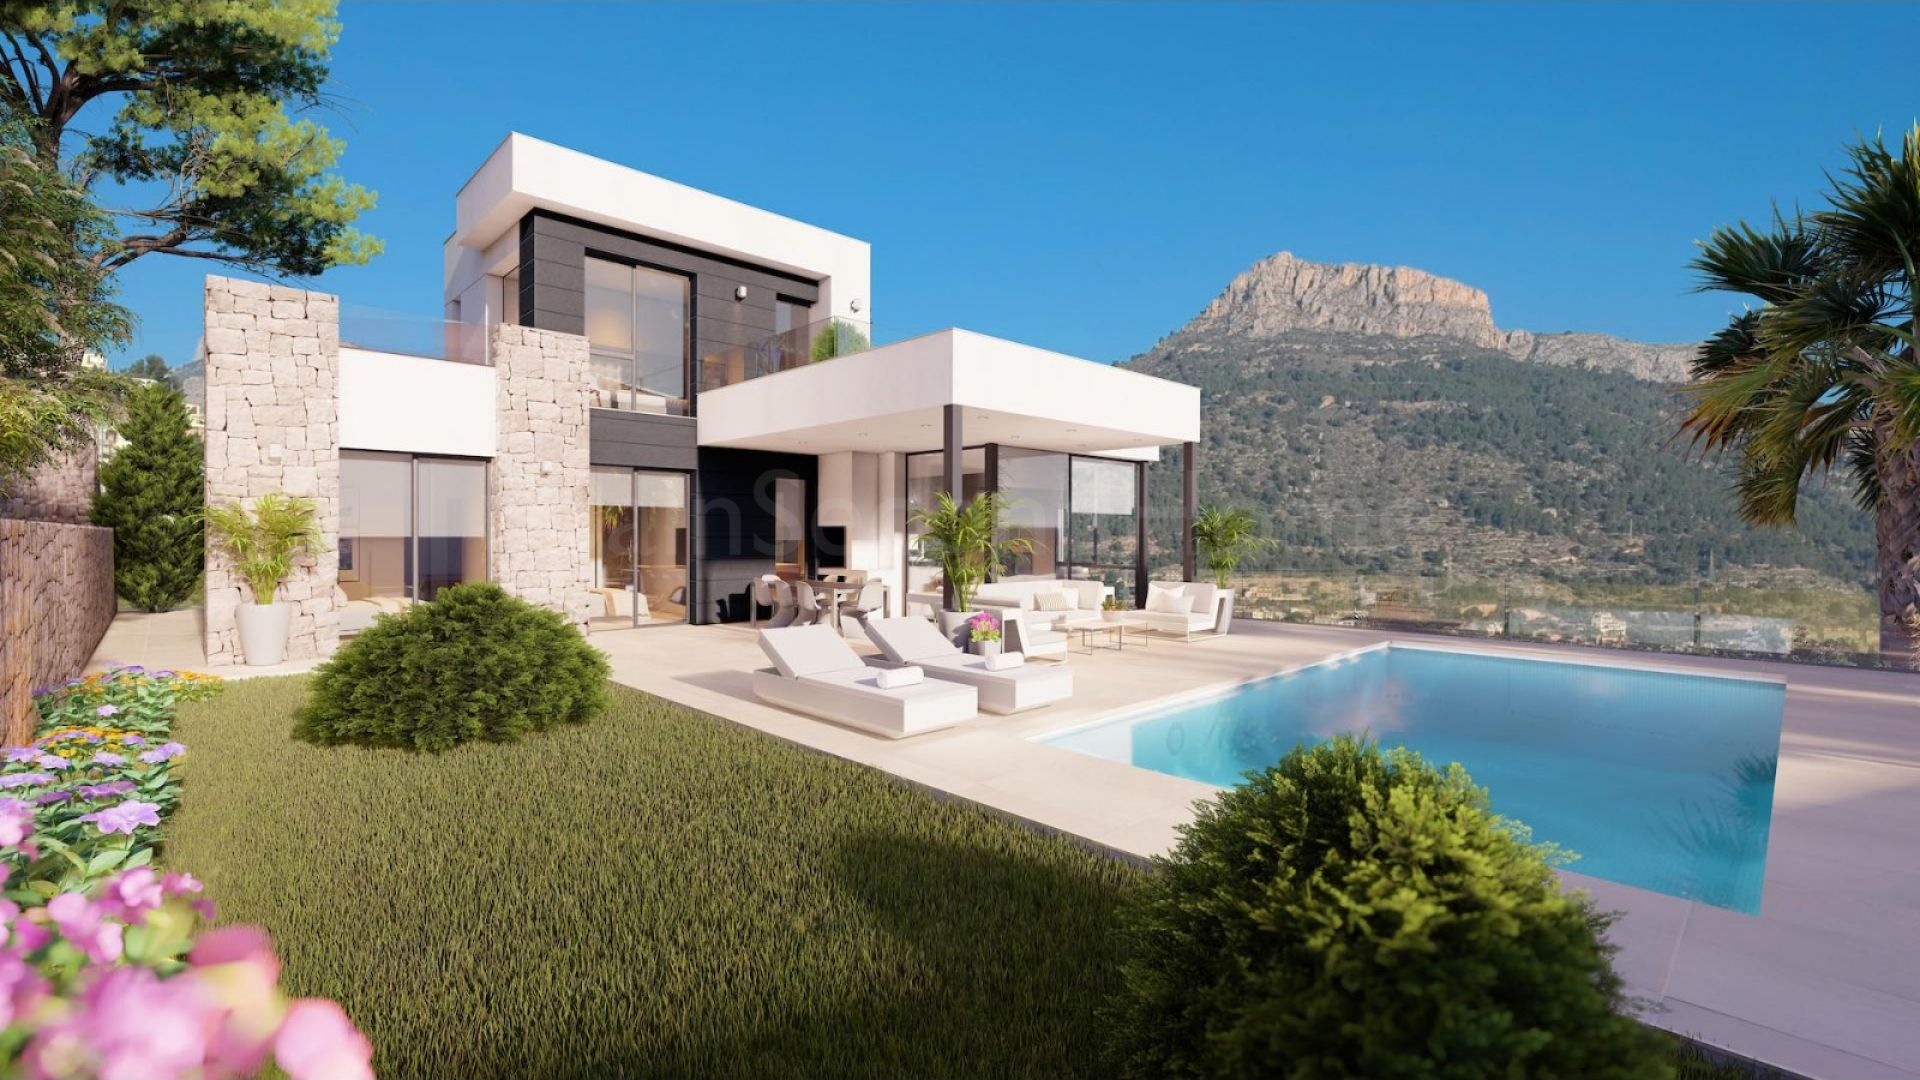 Detached Villa for sale in Maryvilla, Calpe